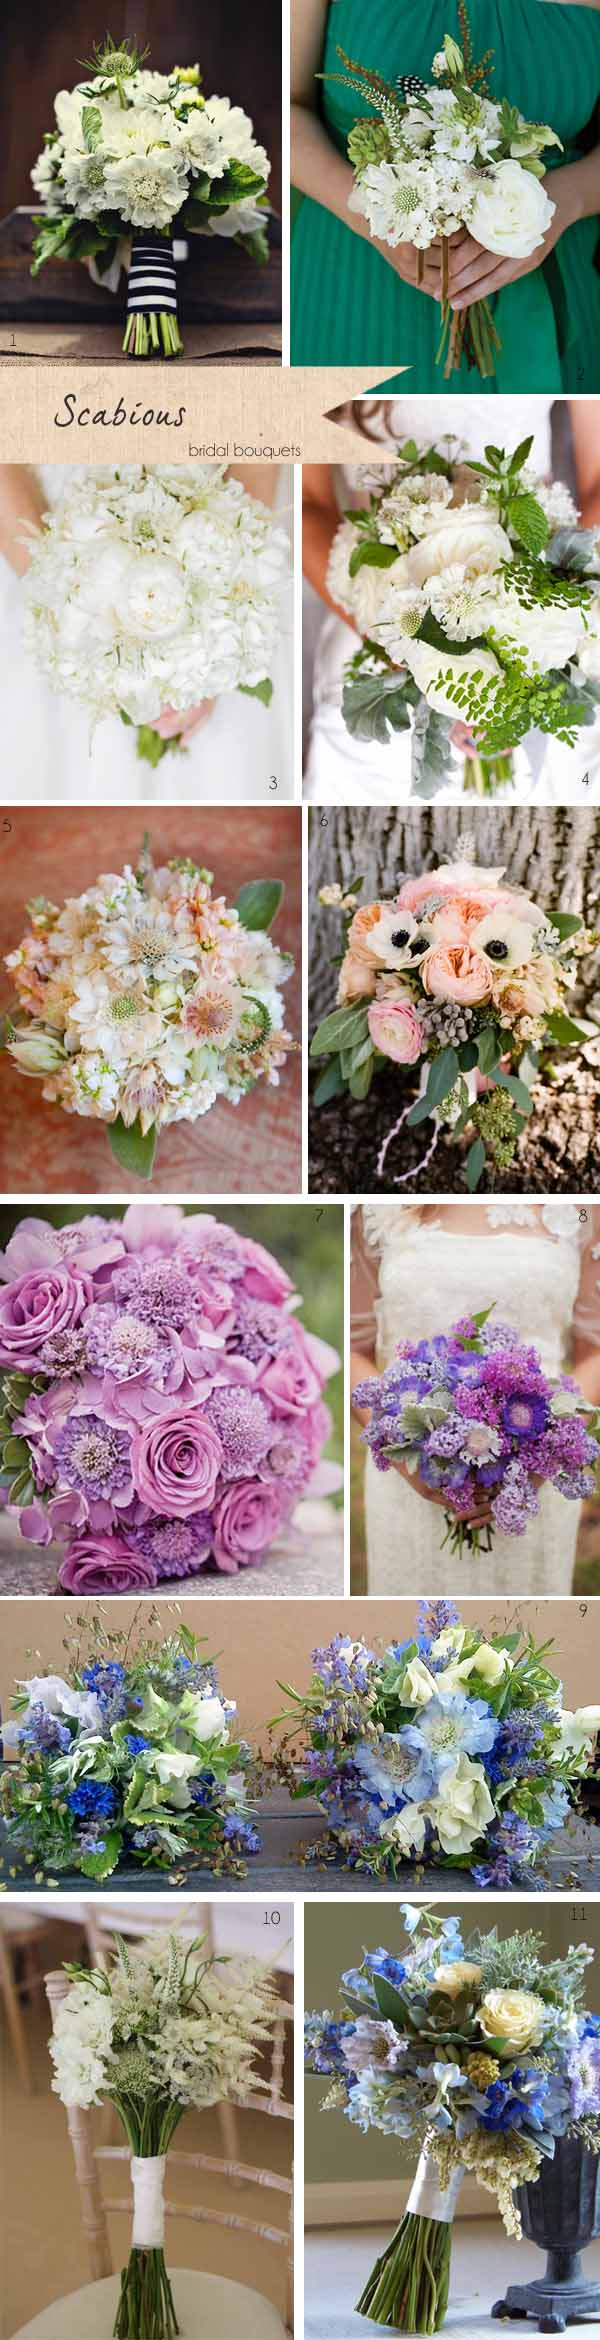 scabious wedding bridal bouquets